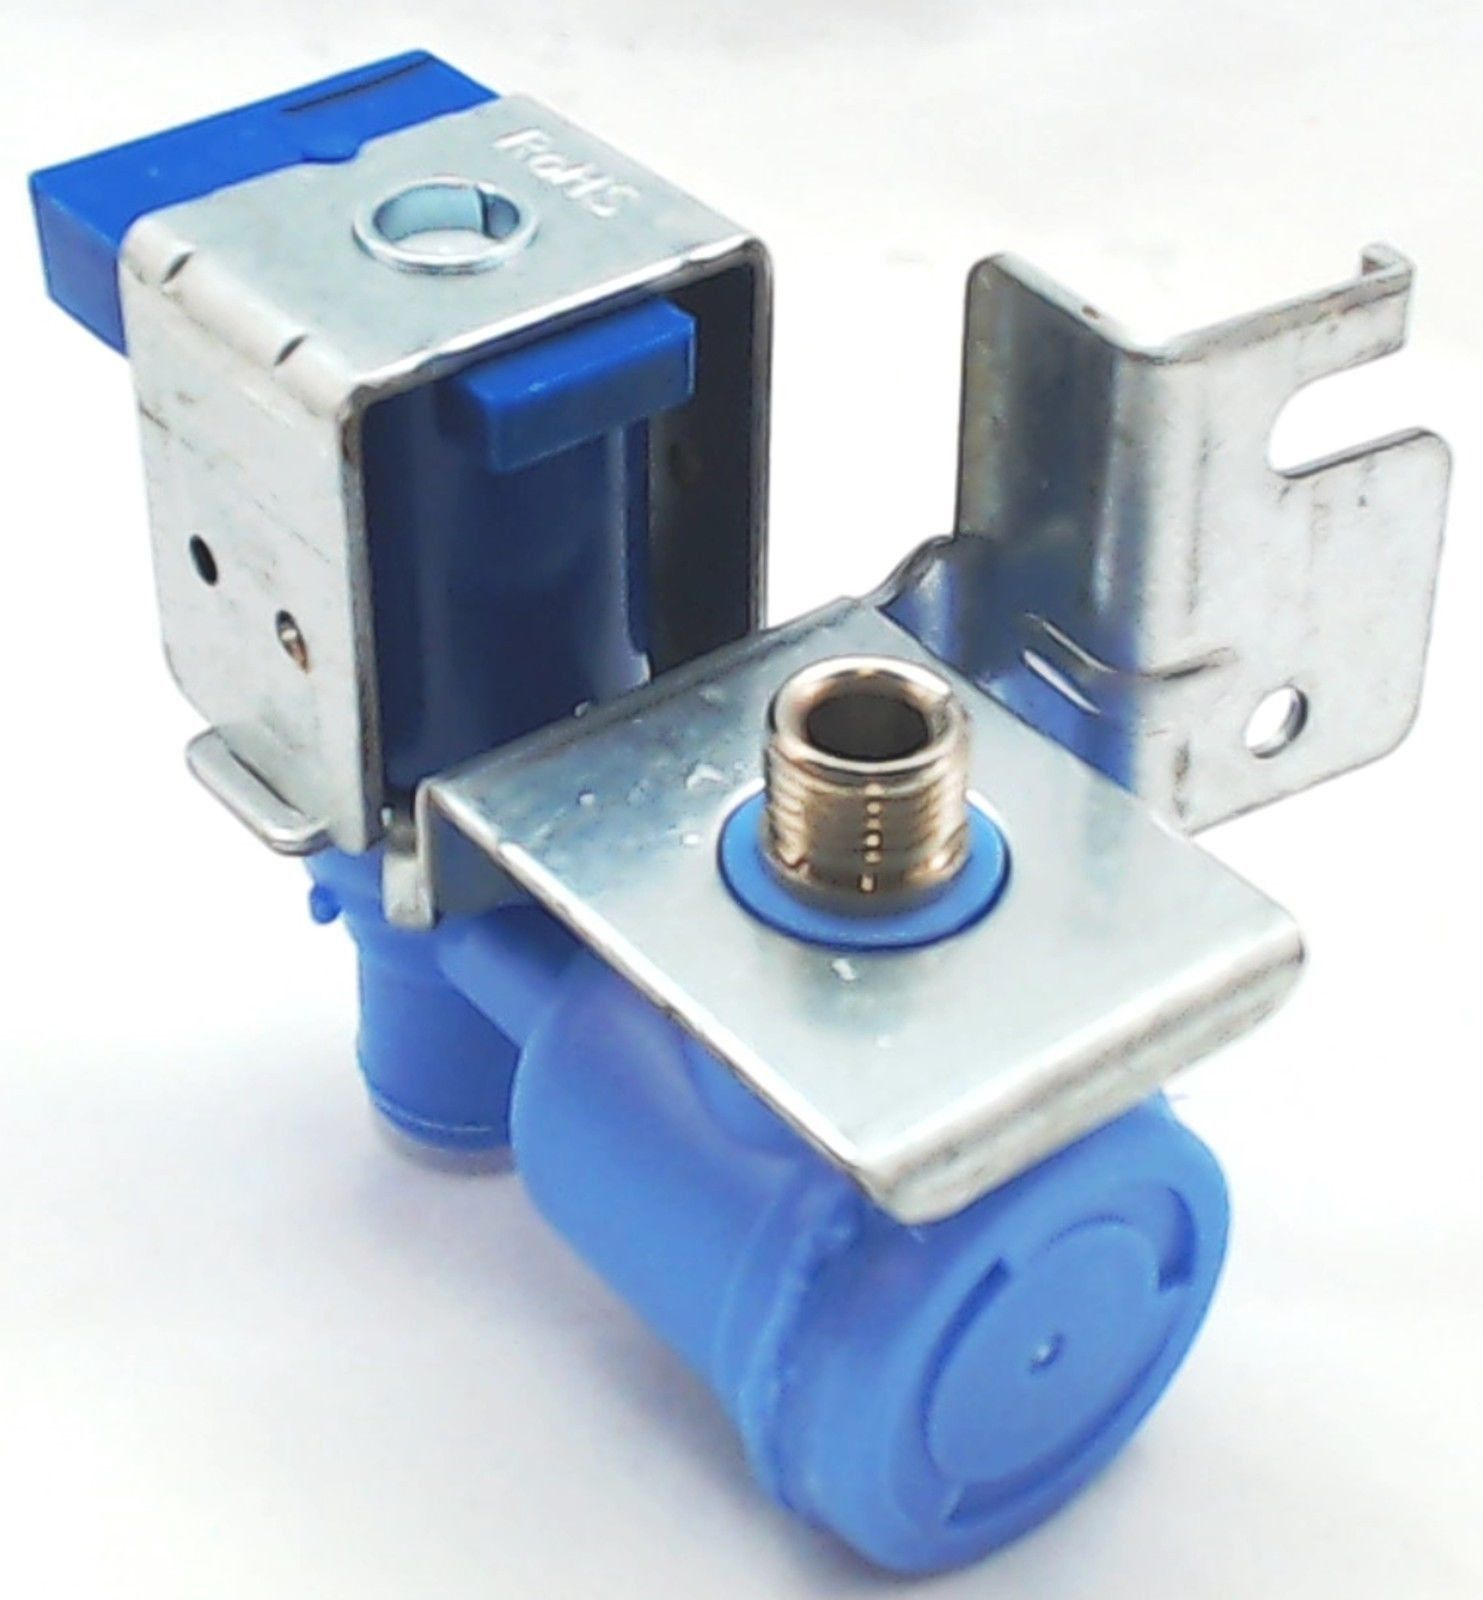 Refrigerator Ice maker Water Valve for LG, AP5218595, PS3533114, AJU55759303 eBay